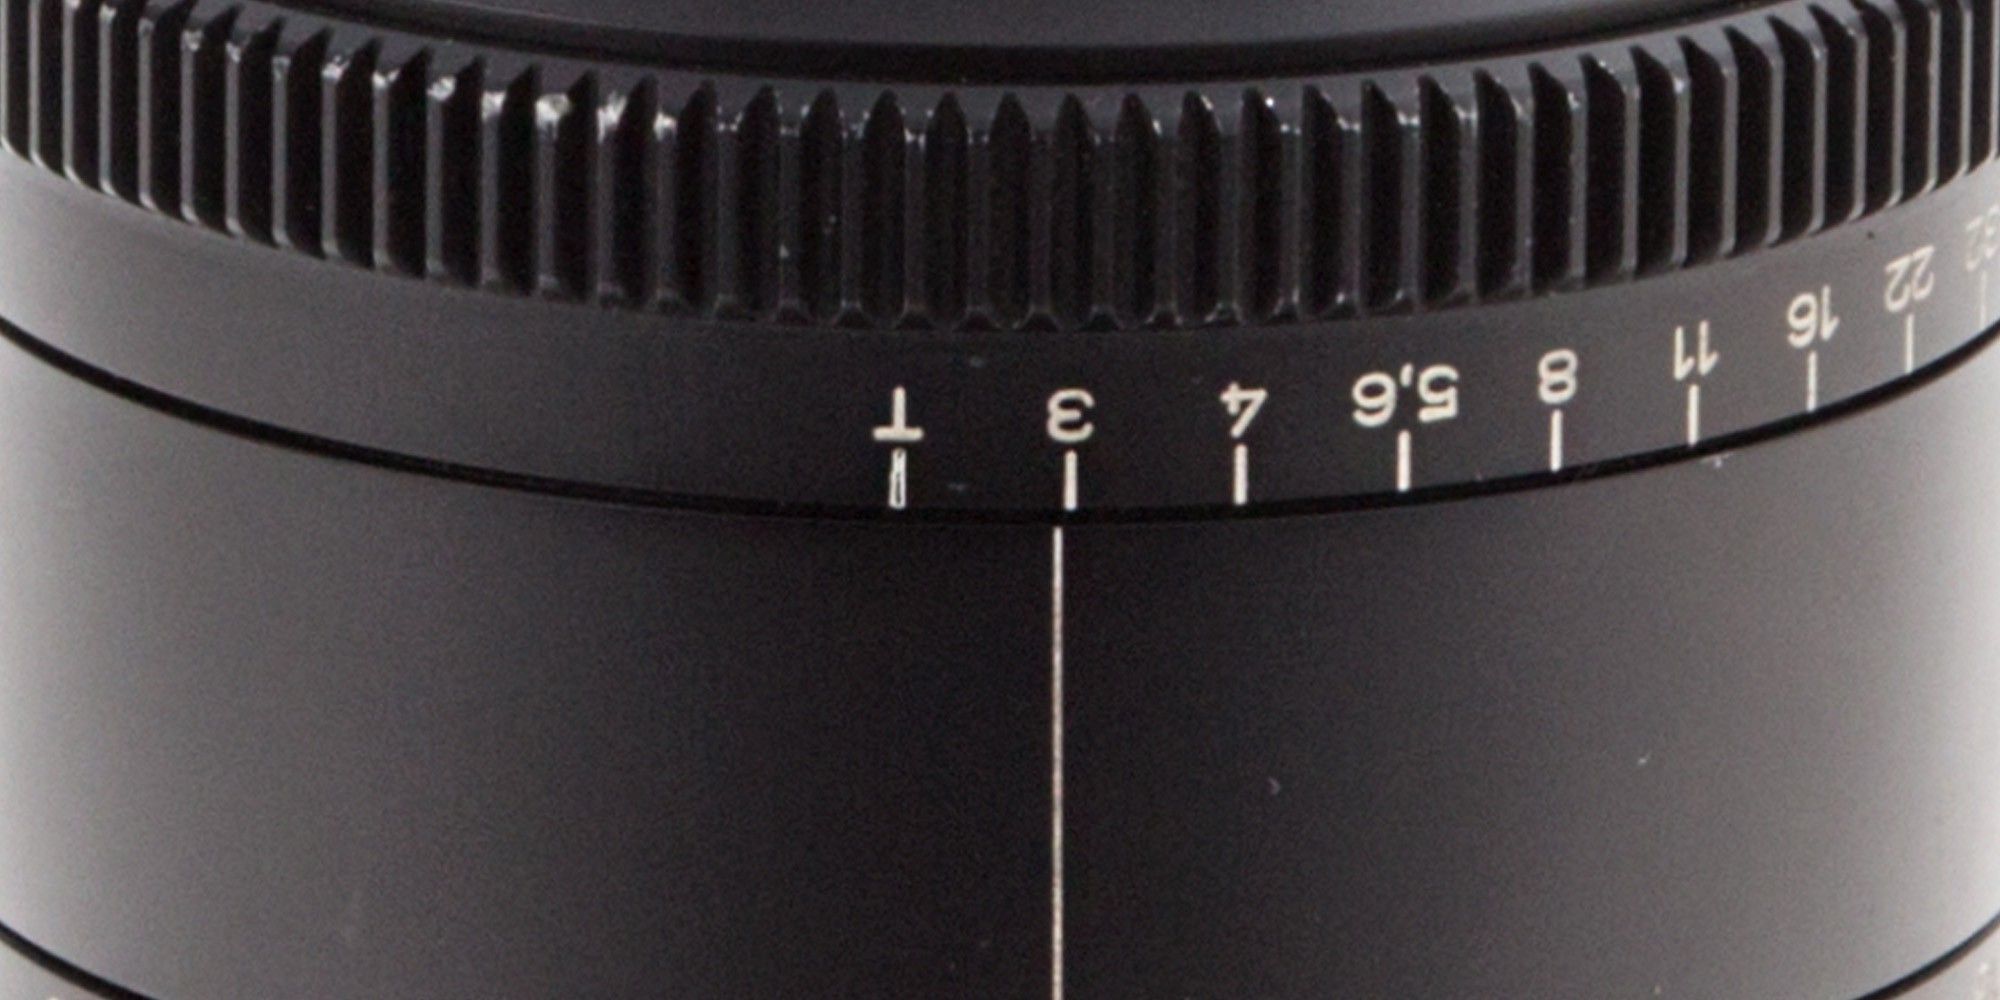 Telephoto-Carl Zeiss Tele-Apotessar 300mm Lens